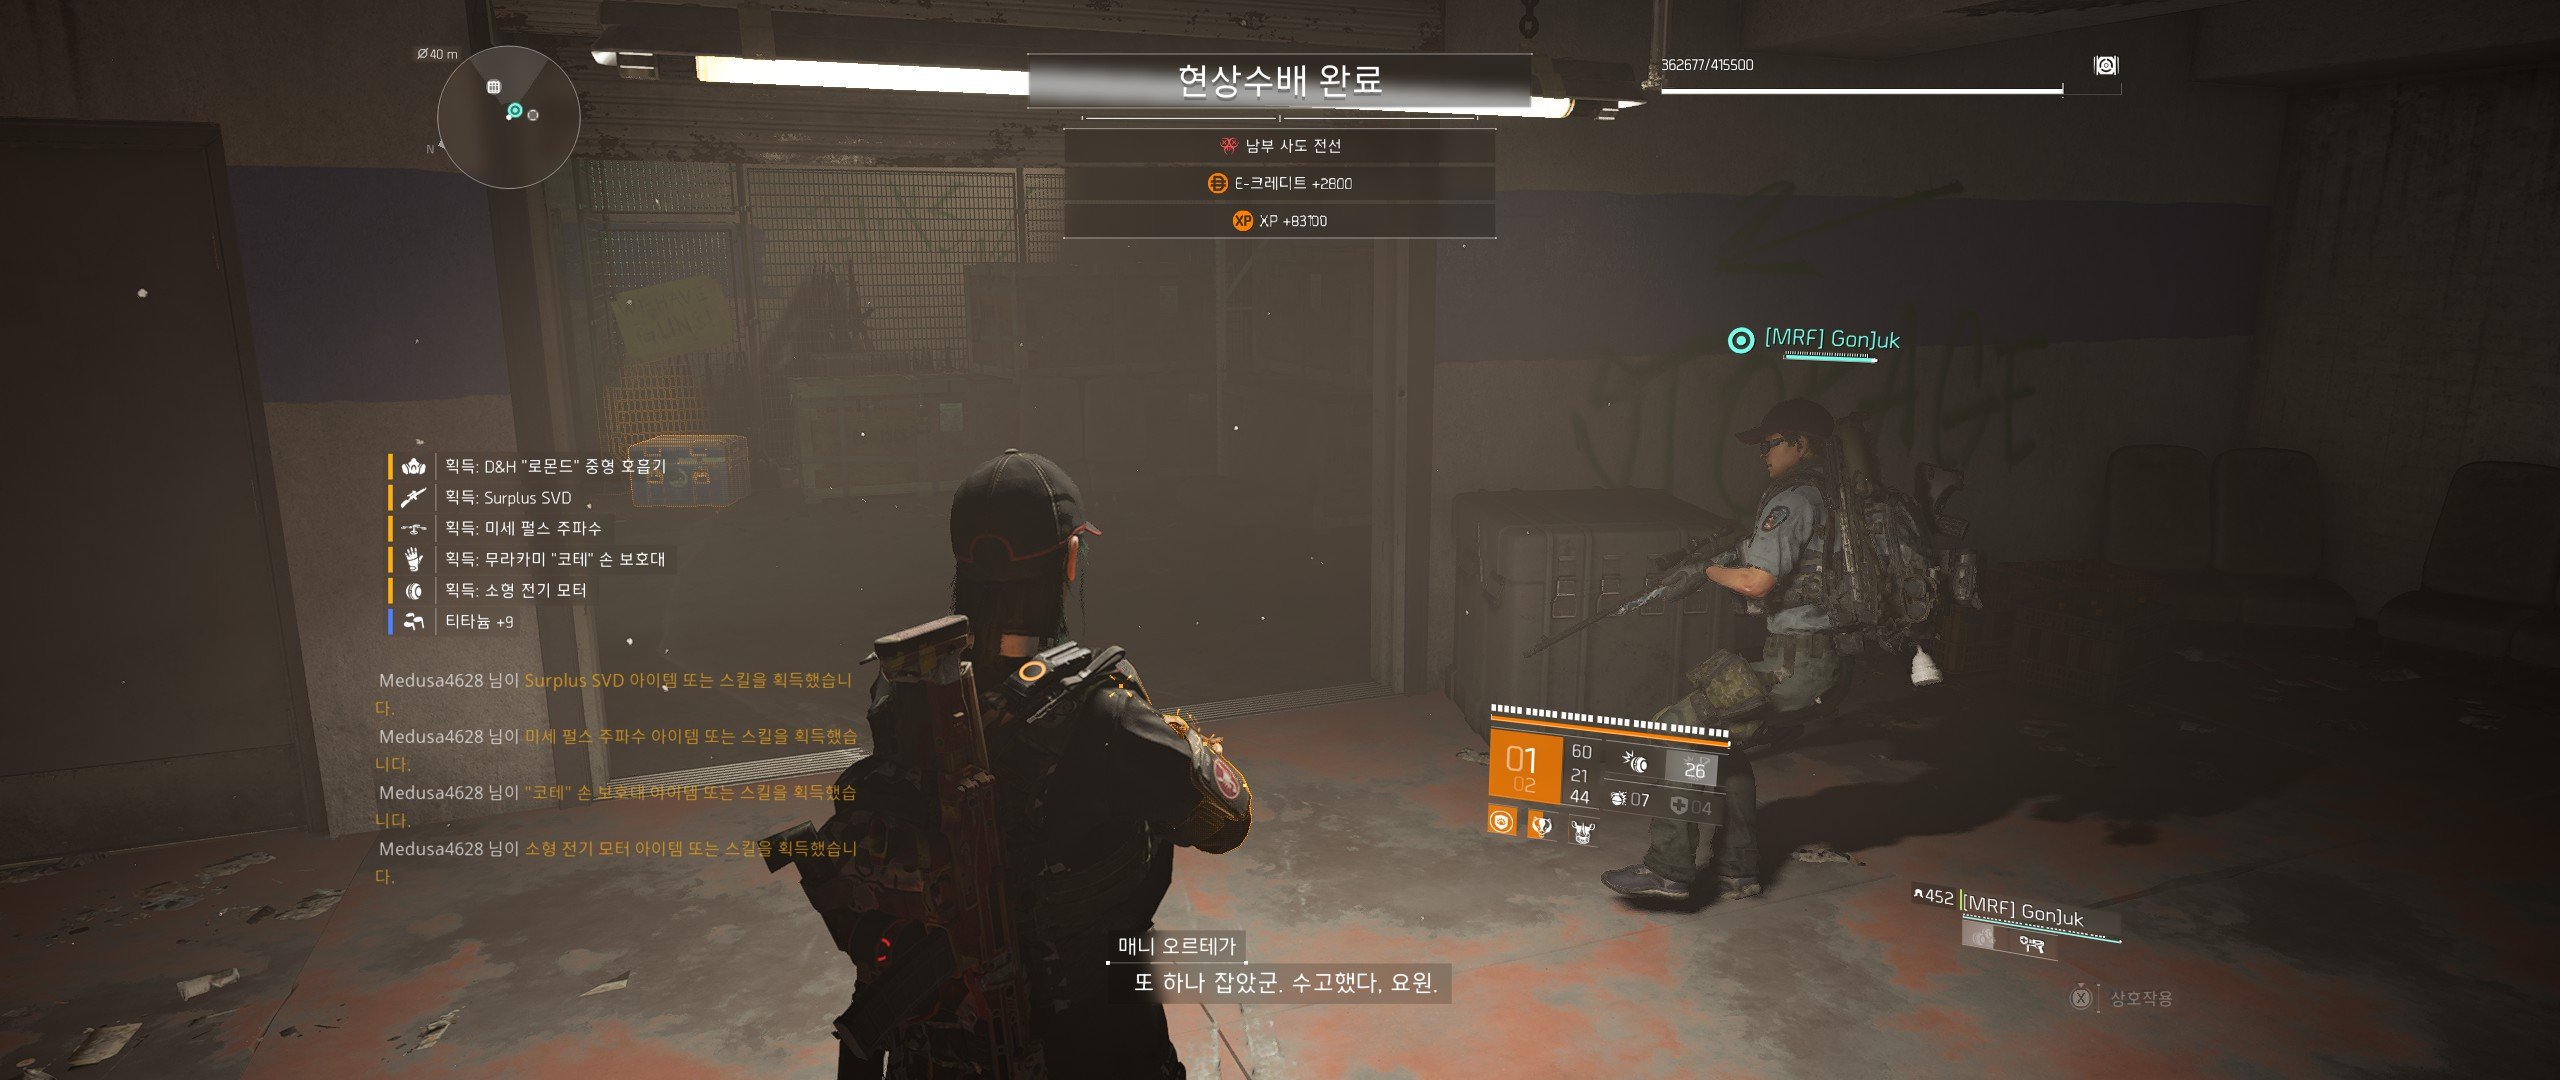 Tom Clancy's The Division® 22019-3-31-21-28-10.jpg